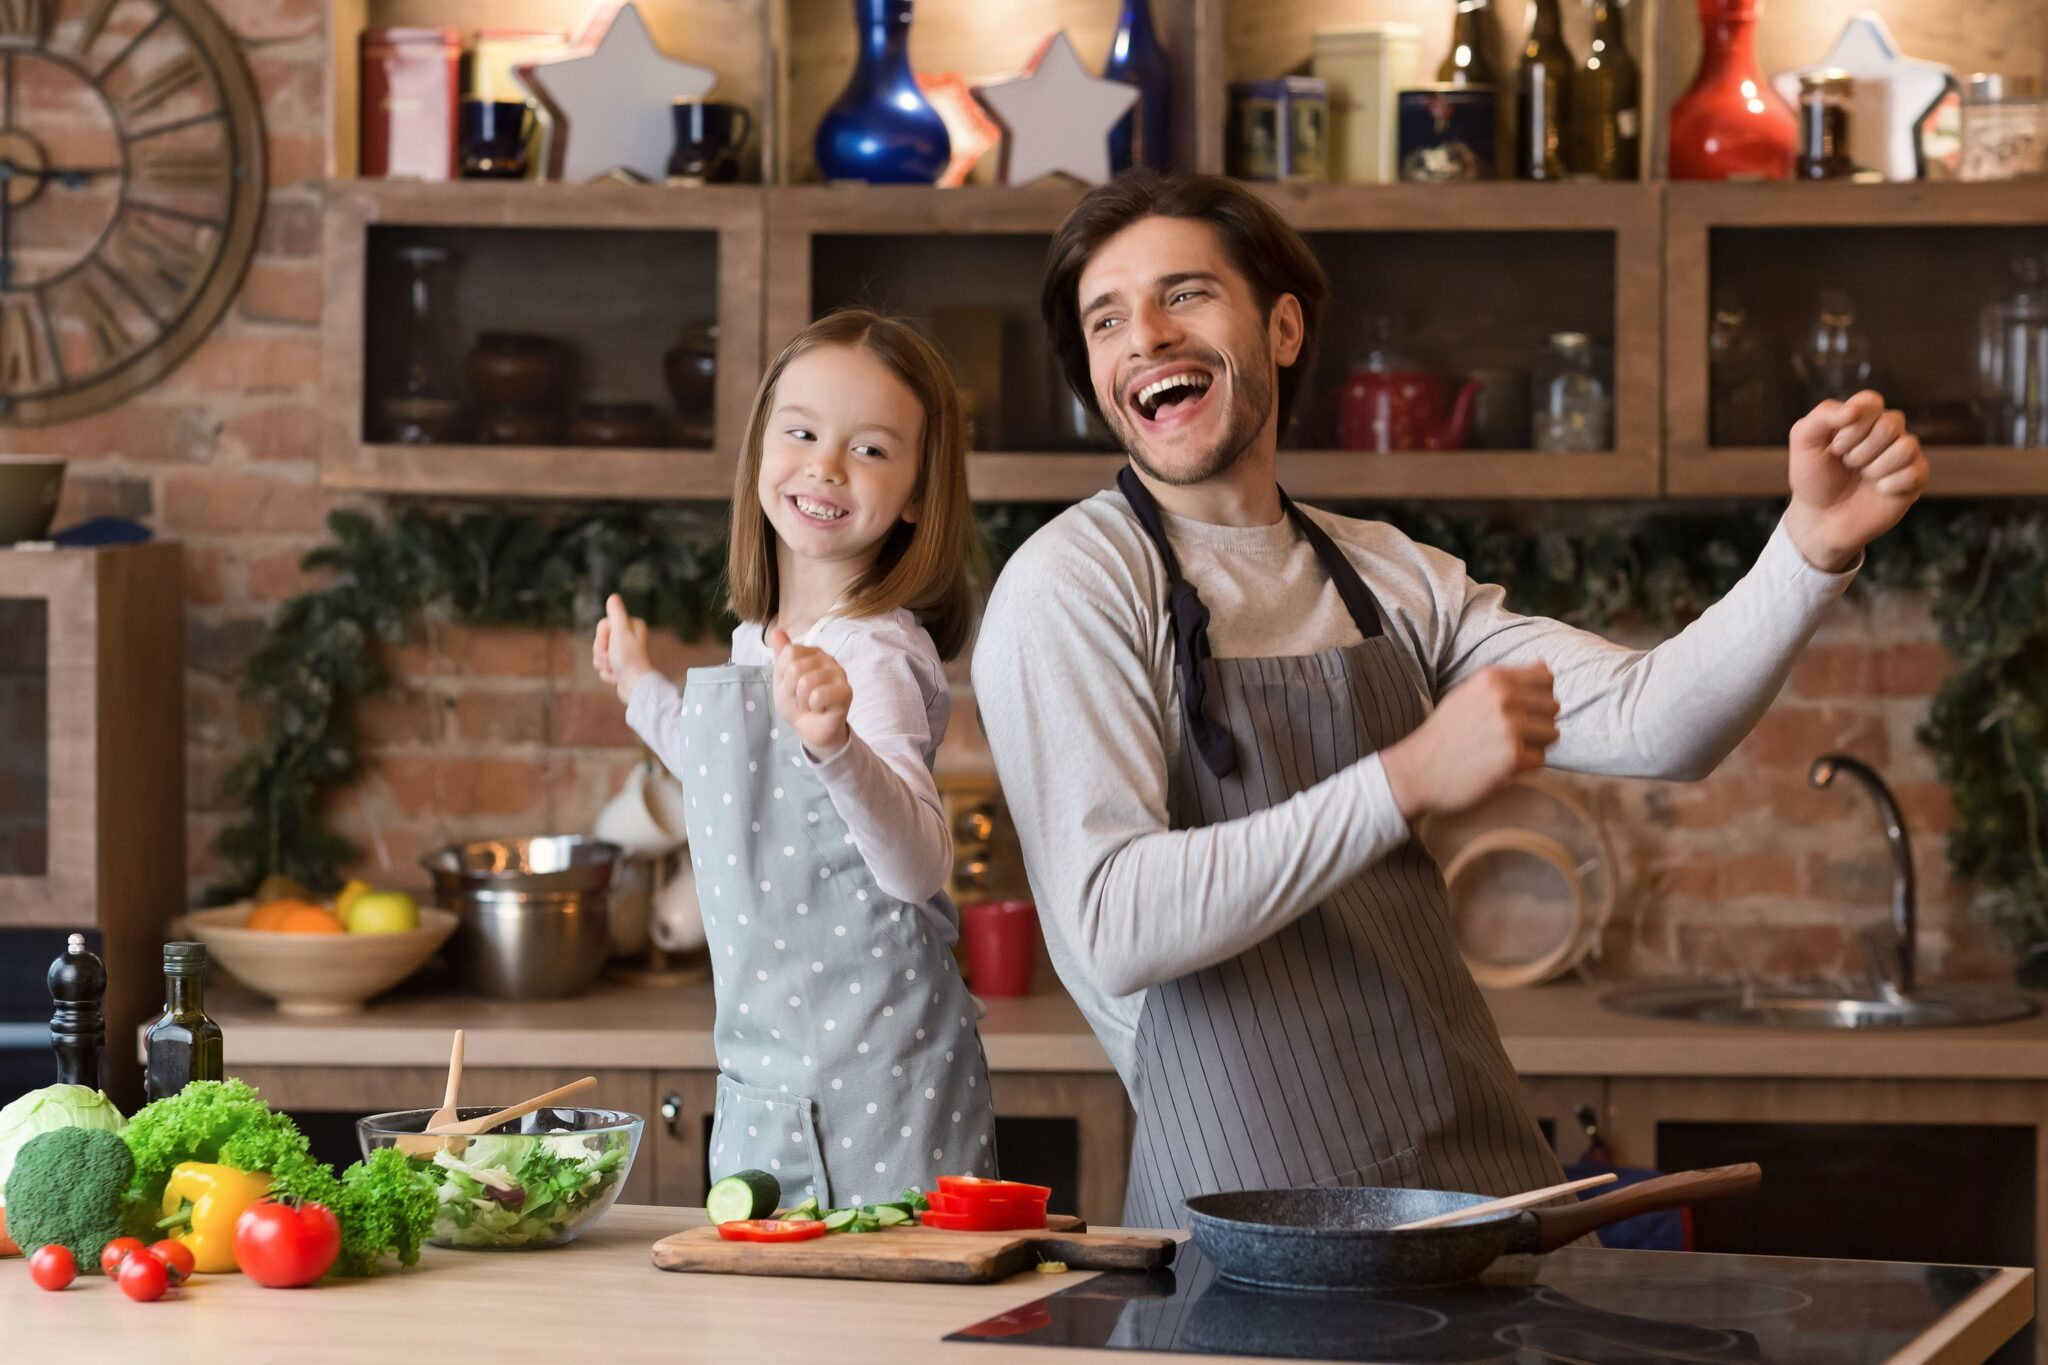 chef and child dance in kitchen